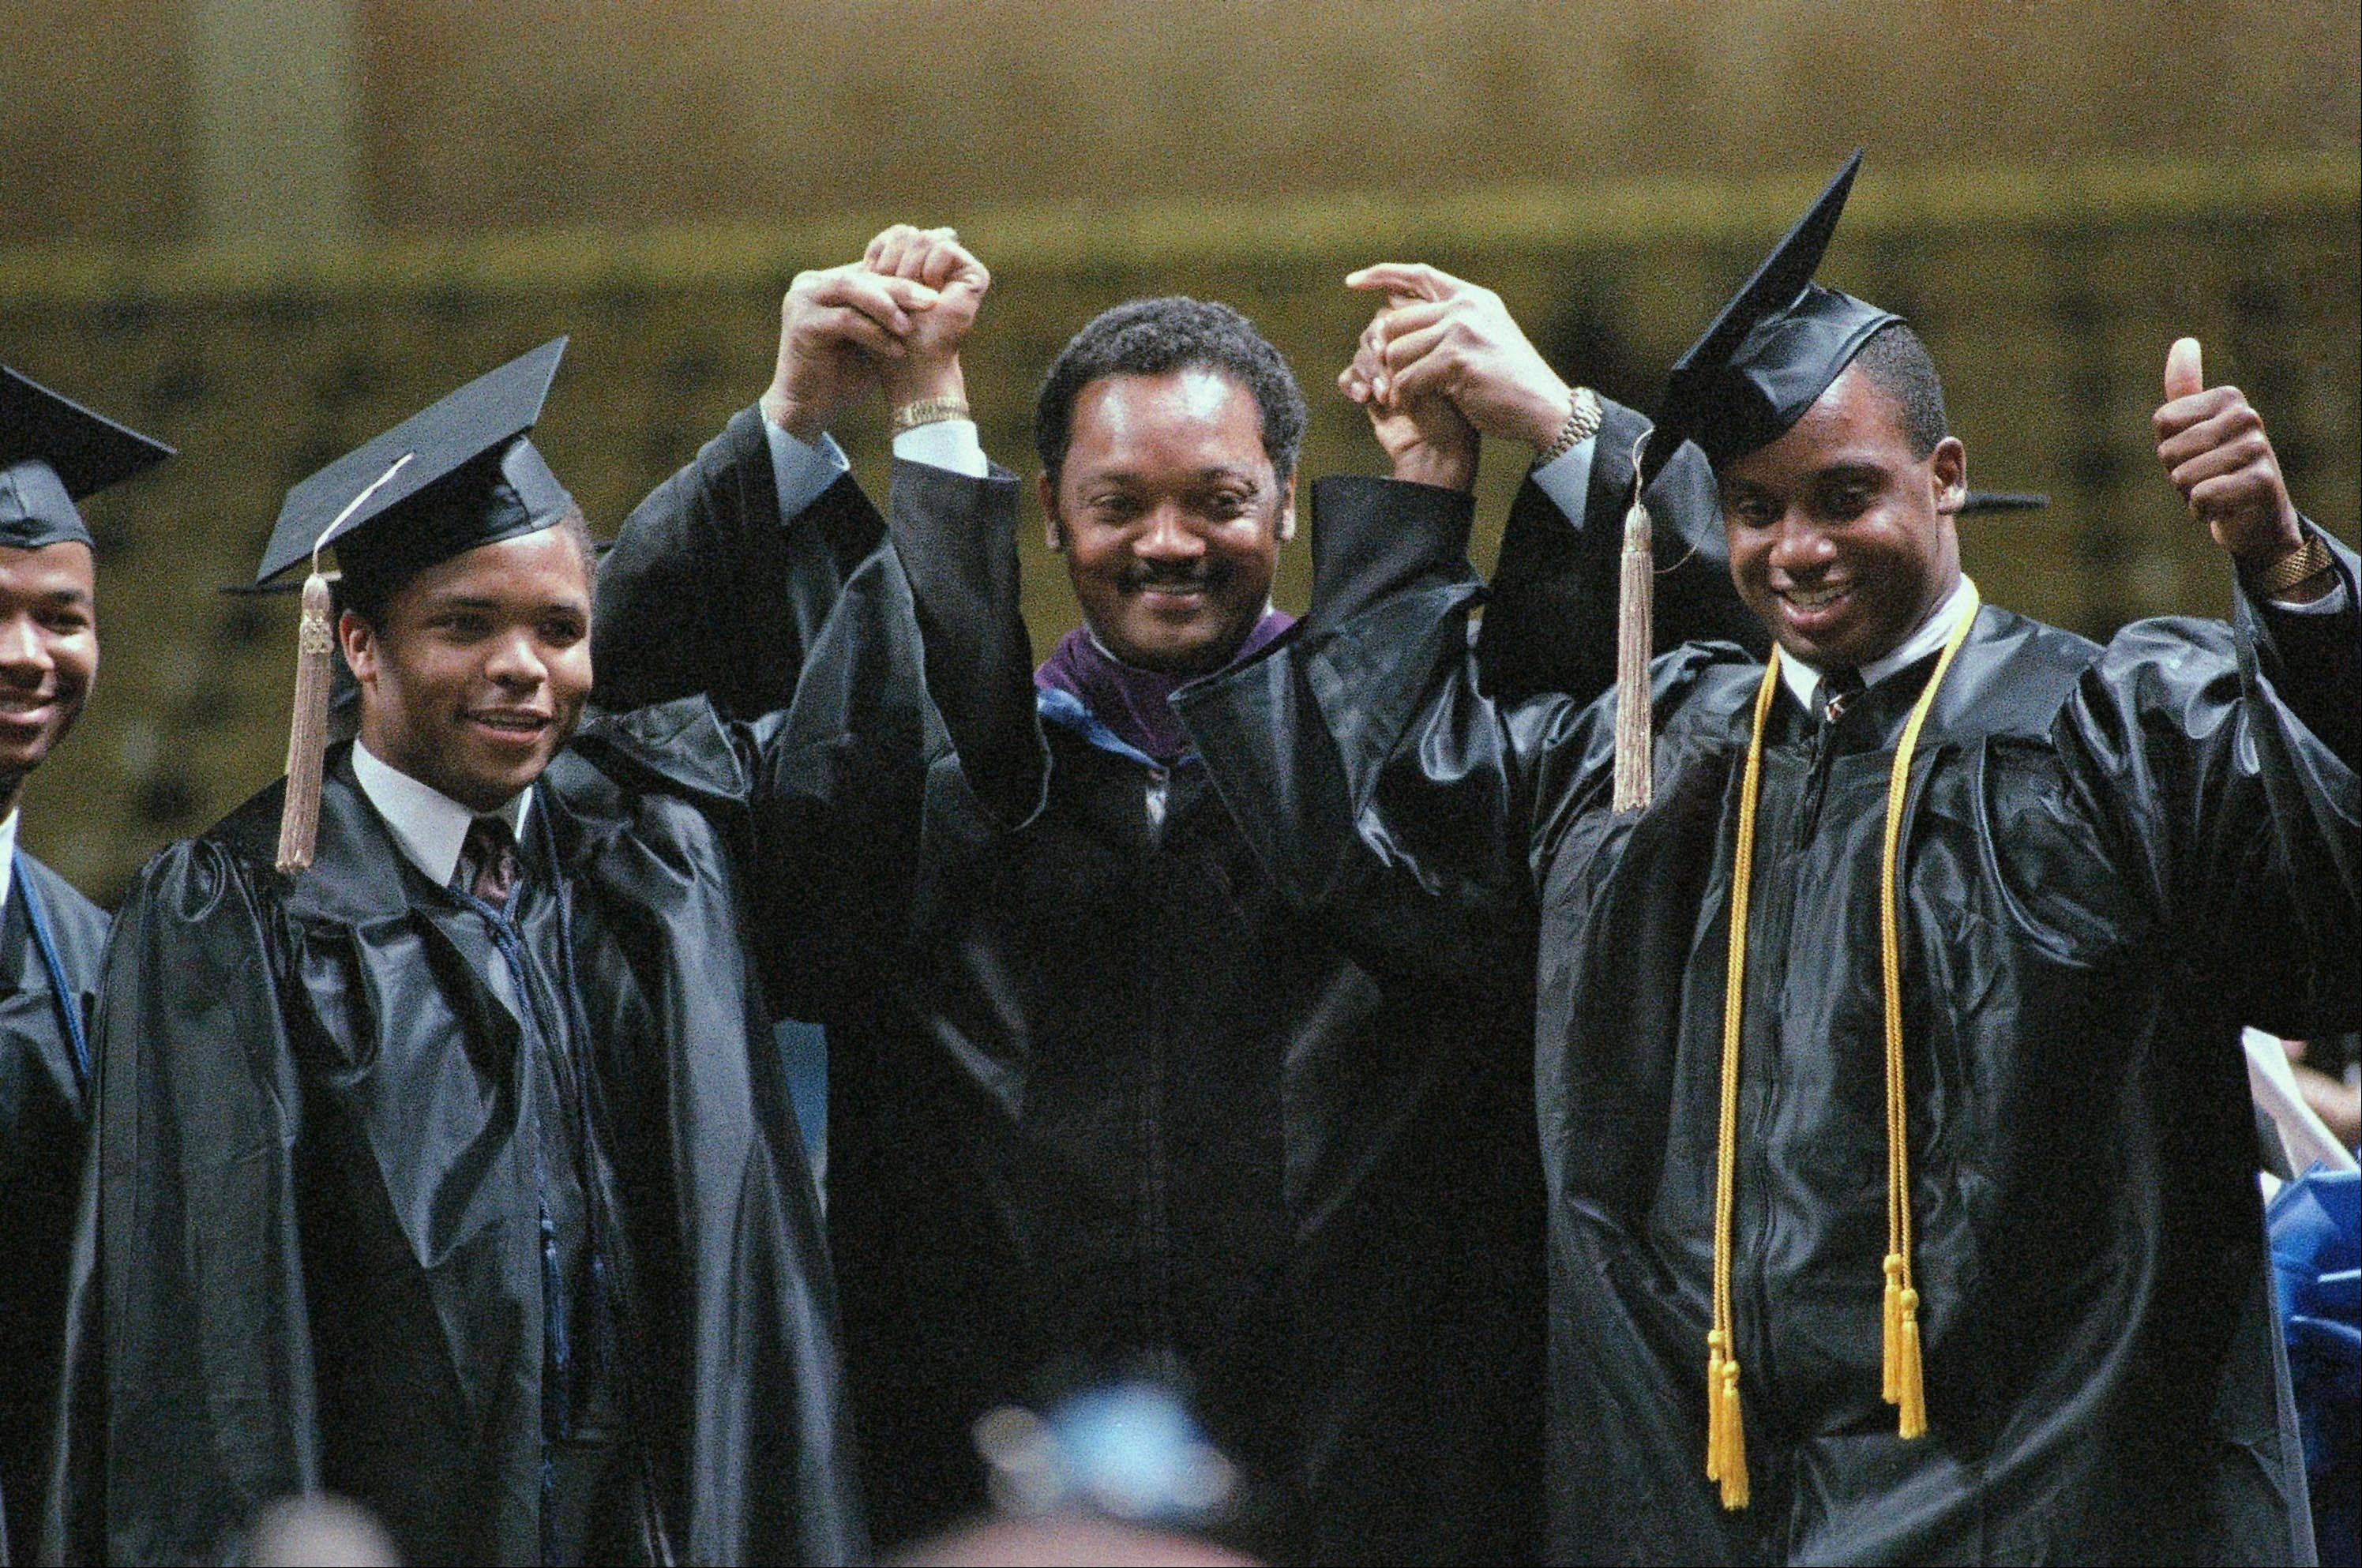 The Rev. Jesse Jackson poses with sons Jesse Jr., left, and Jonathan at the Greensboro Coliseum, after he gave the commencement address and his sons graduated from North Carolina A&T in 1988.